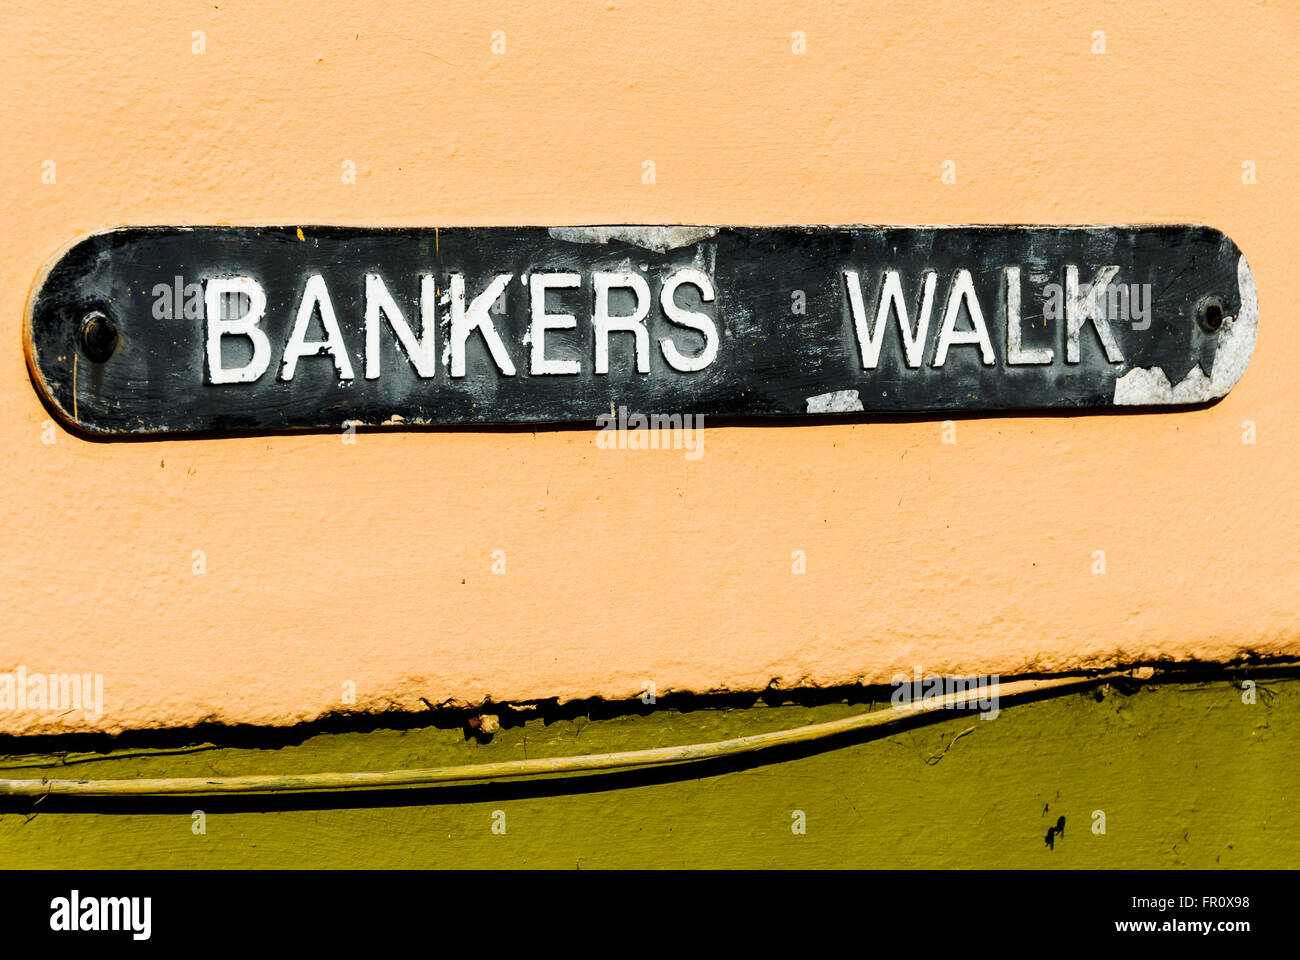 Street sign, 'Bankers Walk' on a grungy house wall. - Stock Image